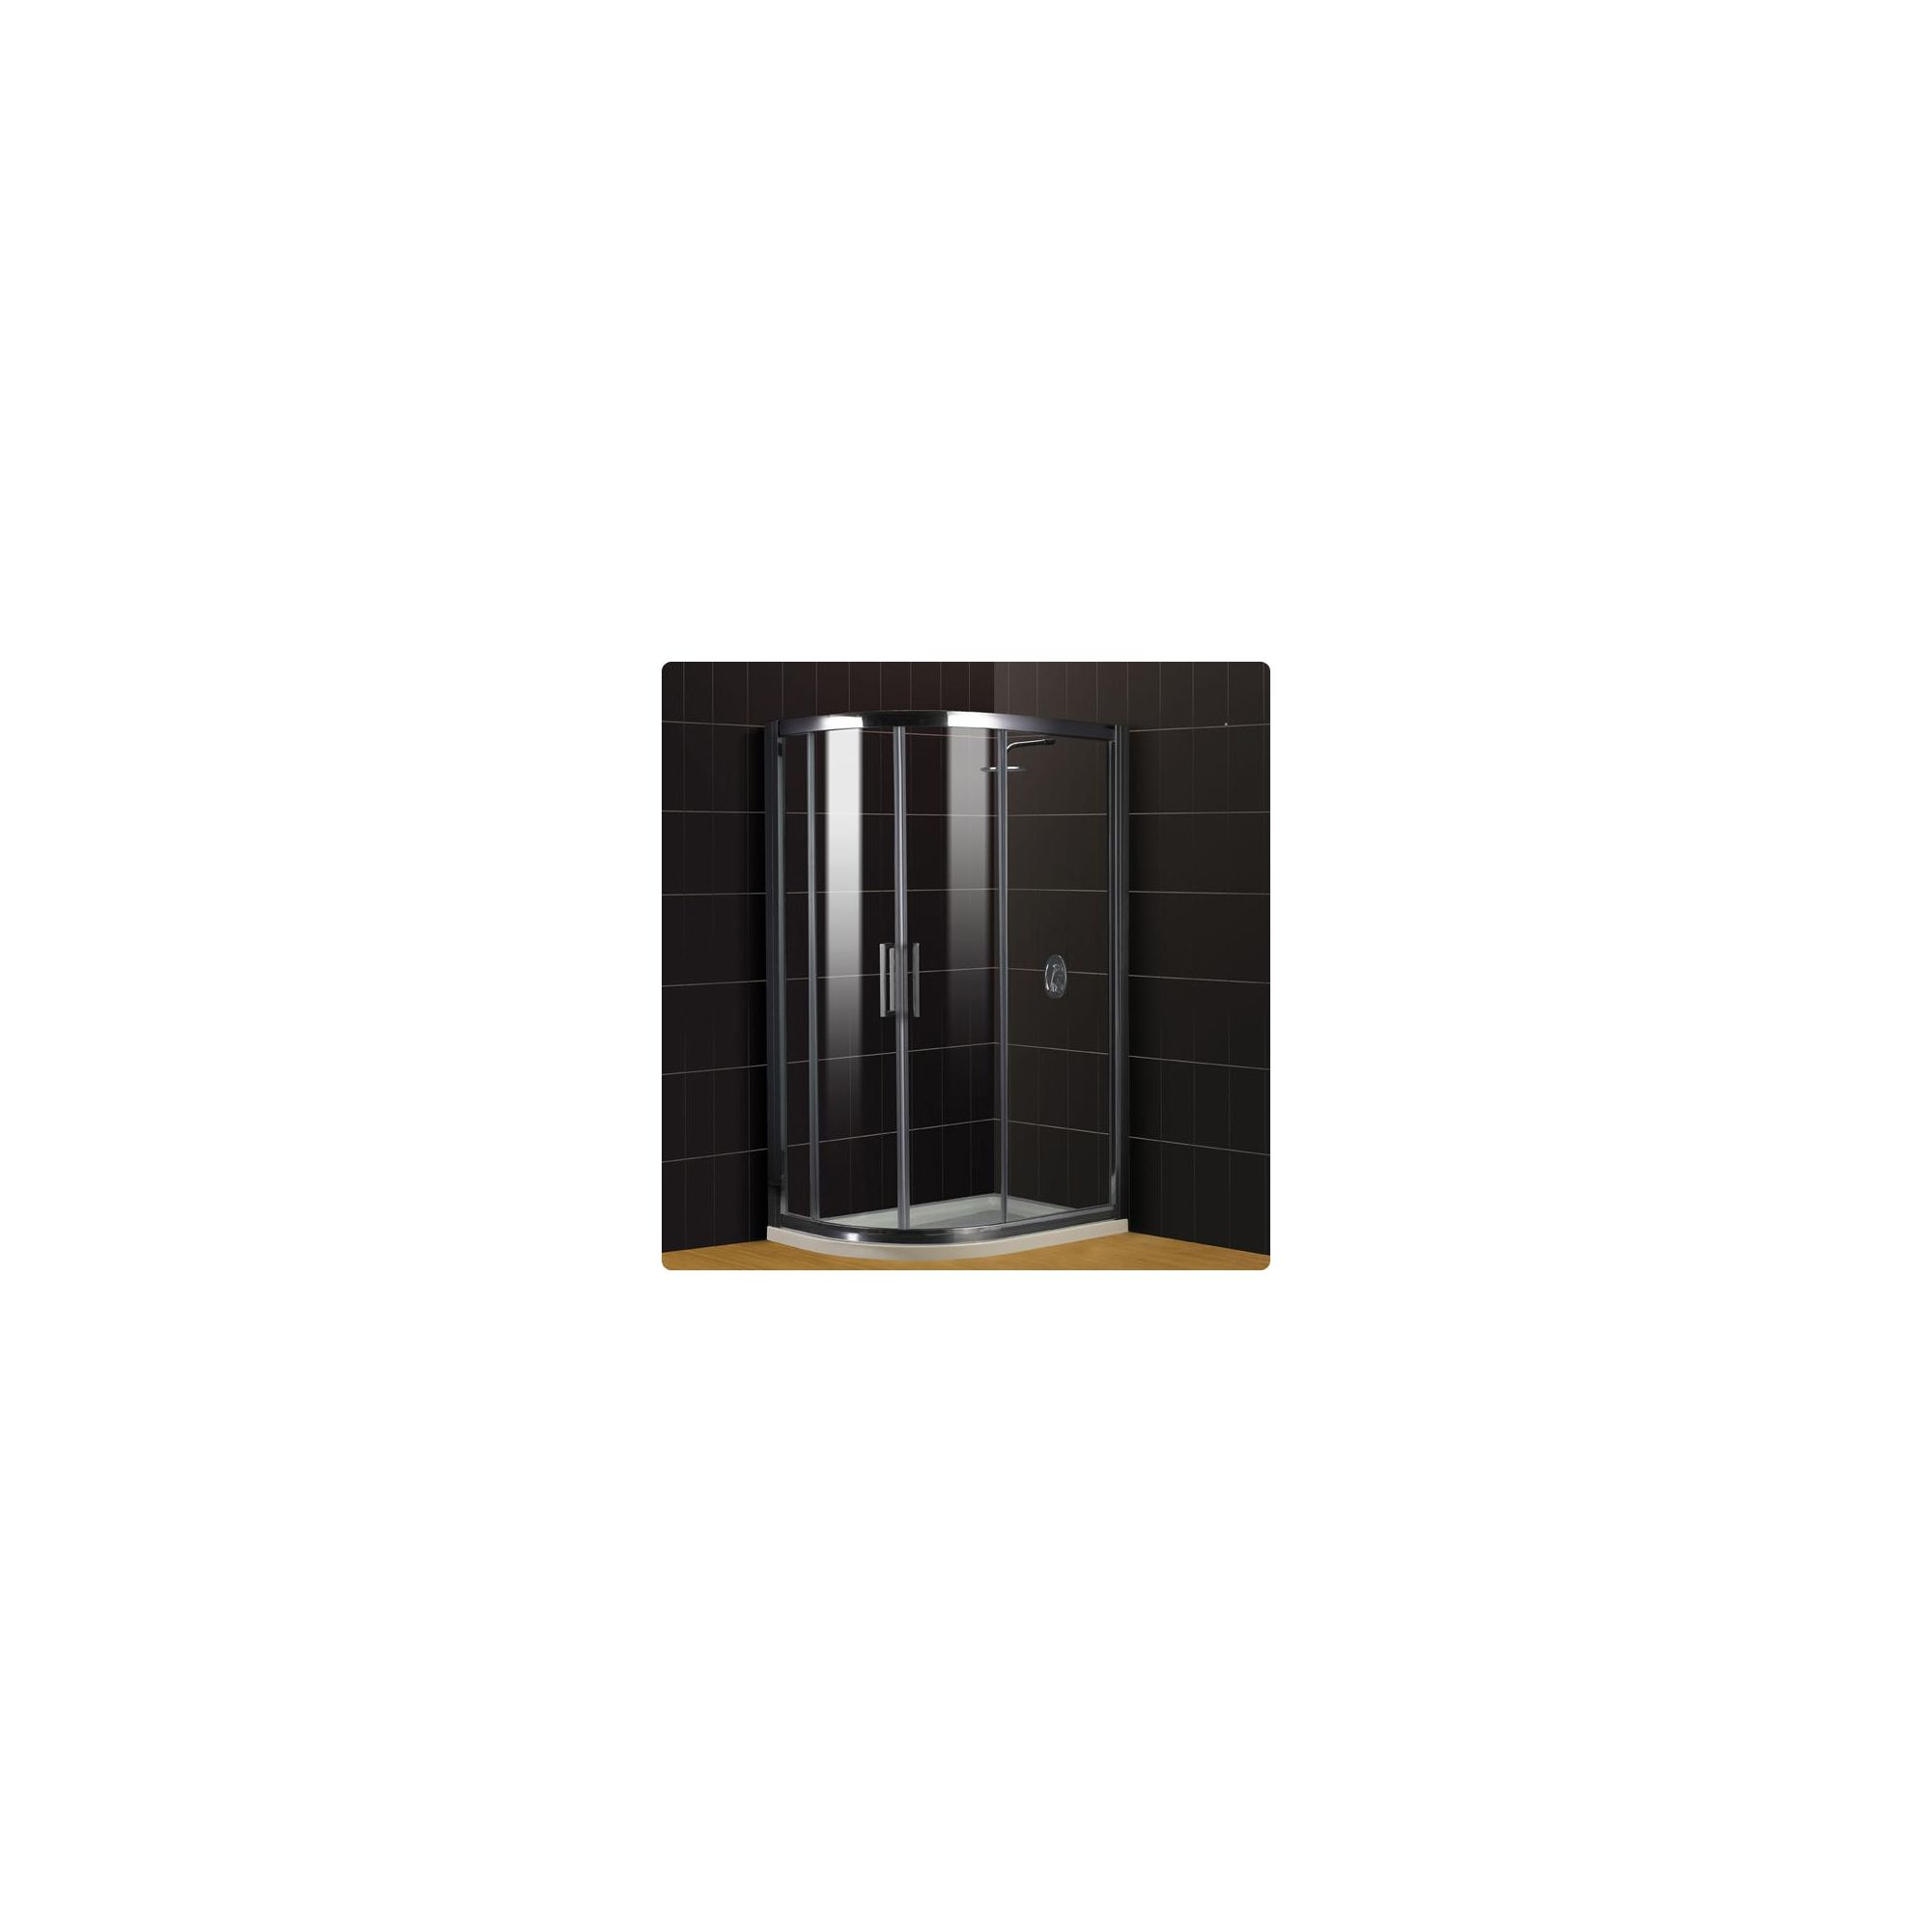 Duchy Supreme Silver Offset Quadrant Shower Enclosure (Complete with Tray) 900mm x 760mm, 8mm Glass at Tesco Direct